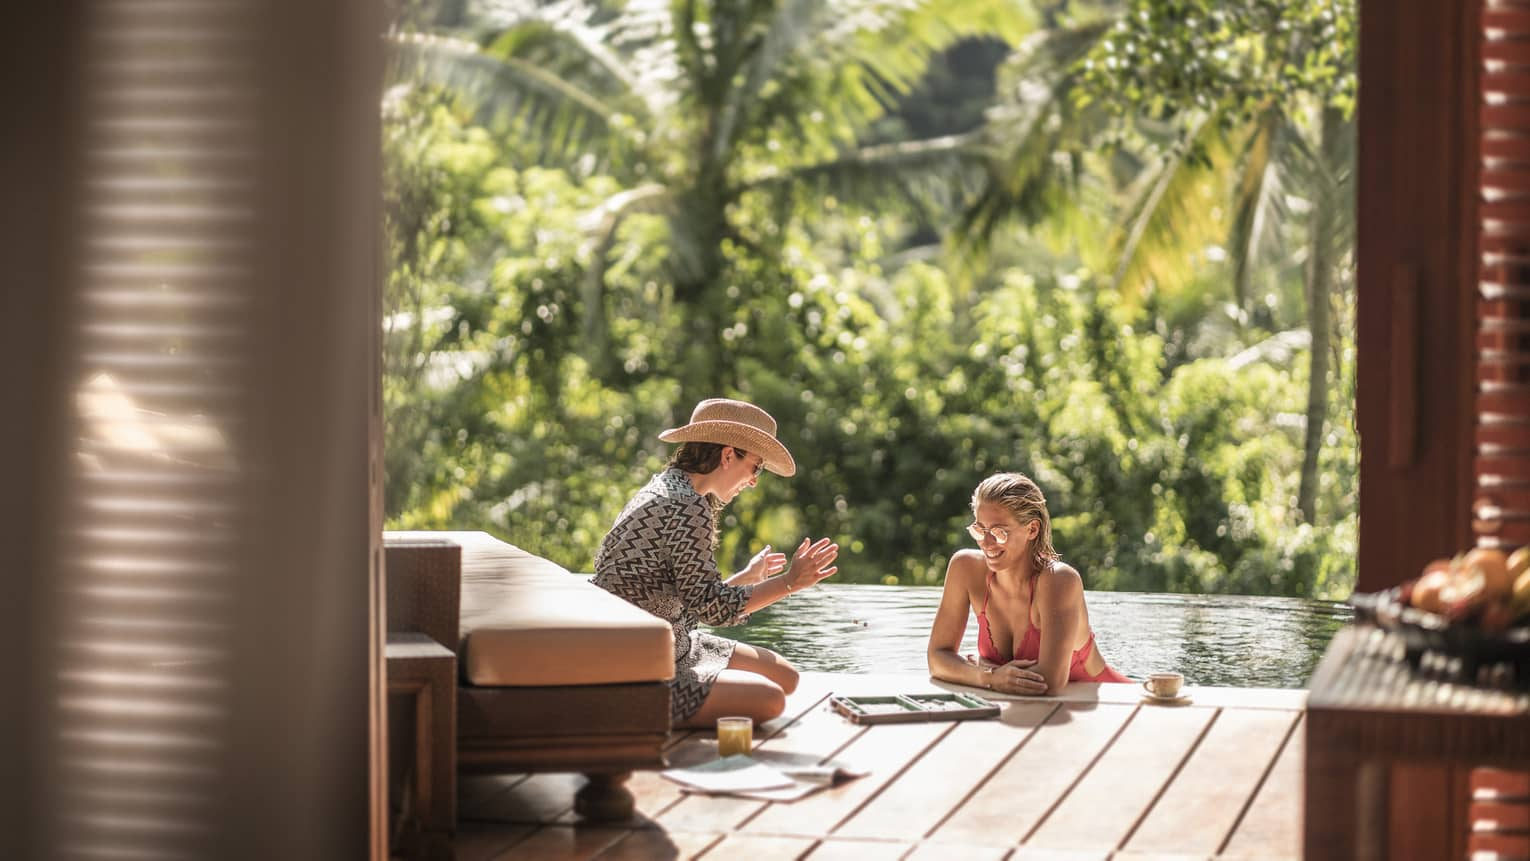 Two guests relaxing and conversing in an outdoor pool in Bali